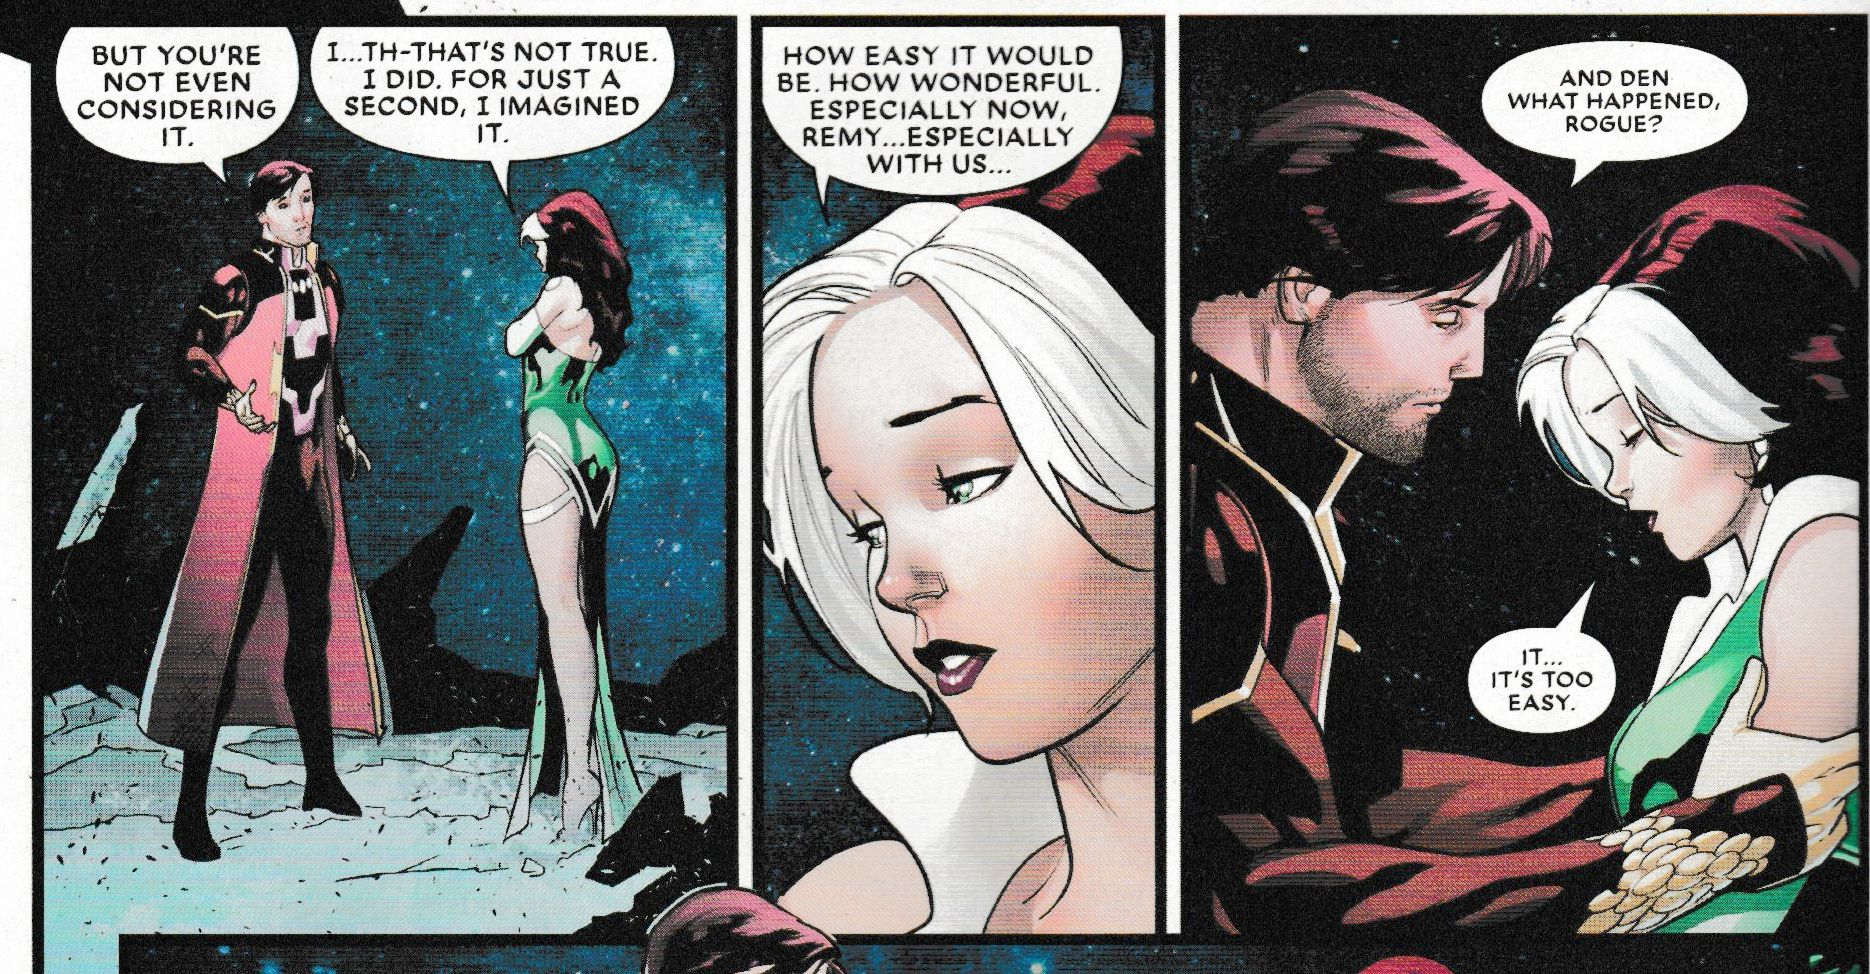 Rogue on a Woman's Right to Choose Her Superpowers (Mr & Mrs X #4 Spoilers) - Bleeding Cool News And Rumors